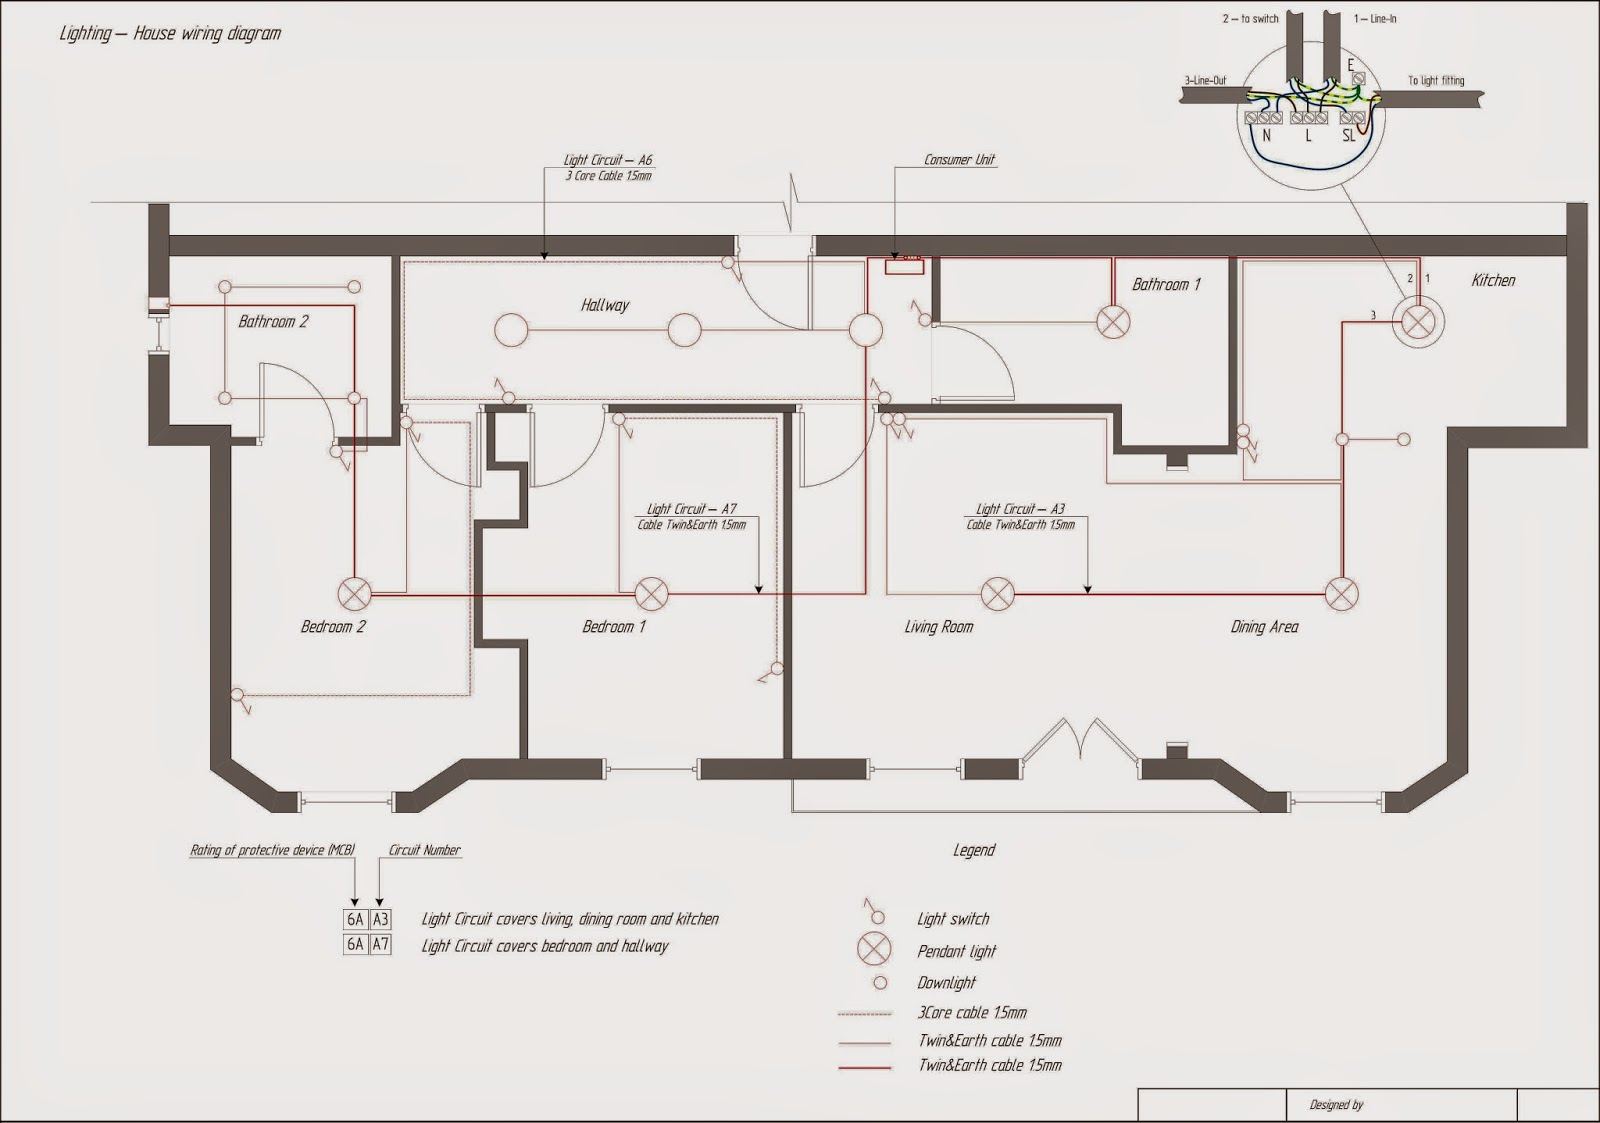 Cafe Floor Plan Design moreover Kentucky State Map further Transformer Electrical Drawing Symbols together with House Wiring Diagrams further Free Visio Electrical Wiring Symbols. on electrical symbols house wiring diagrams